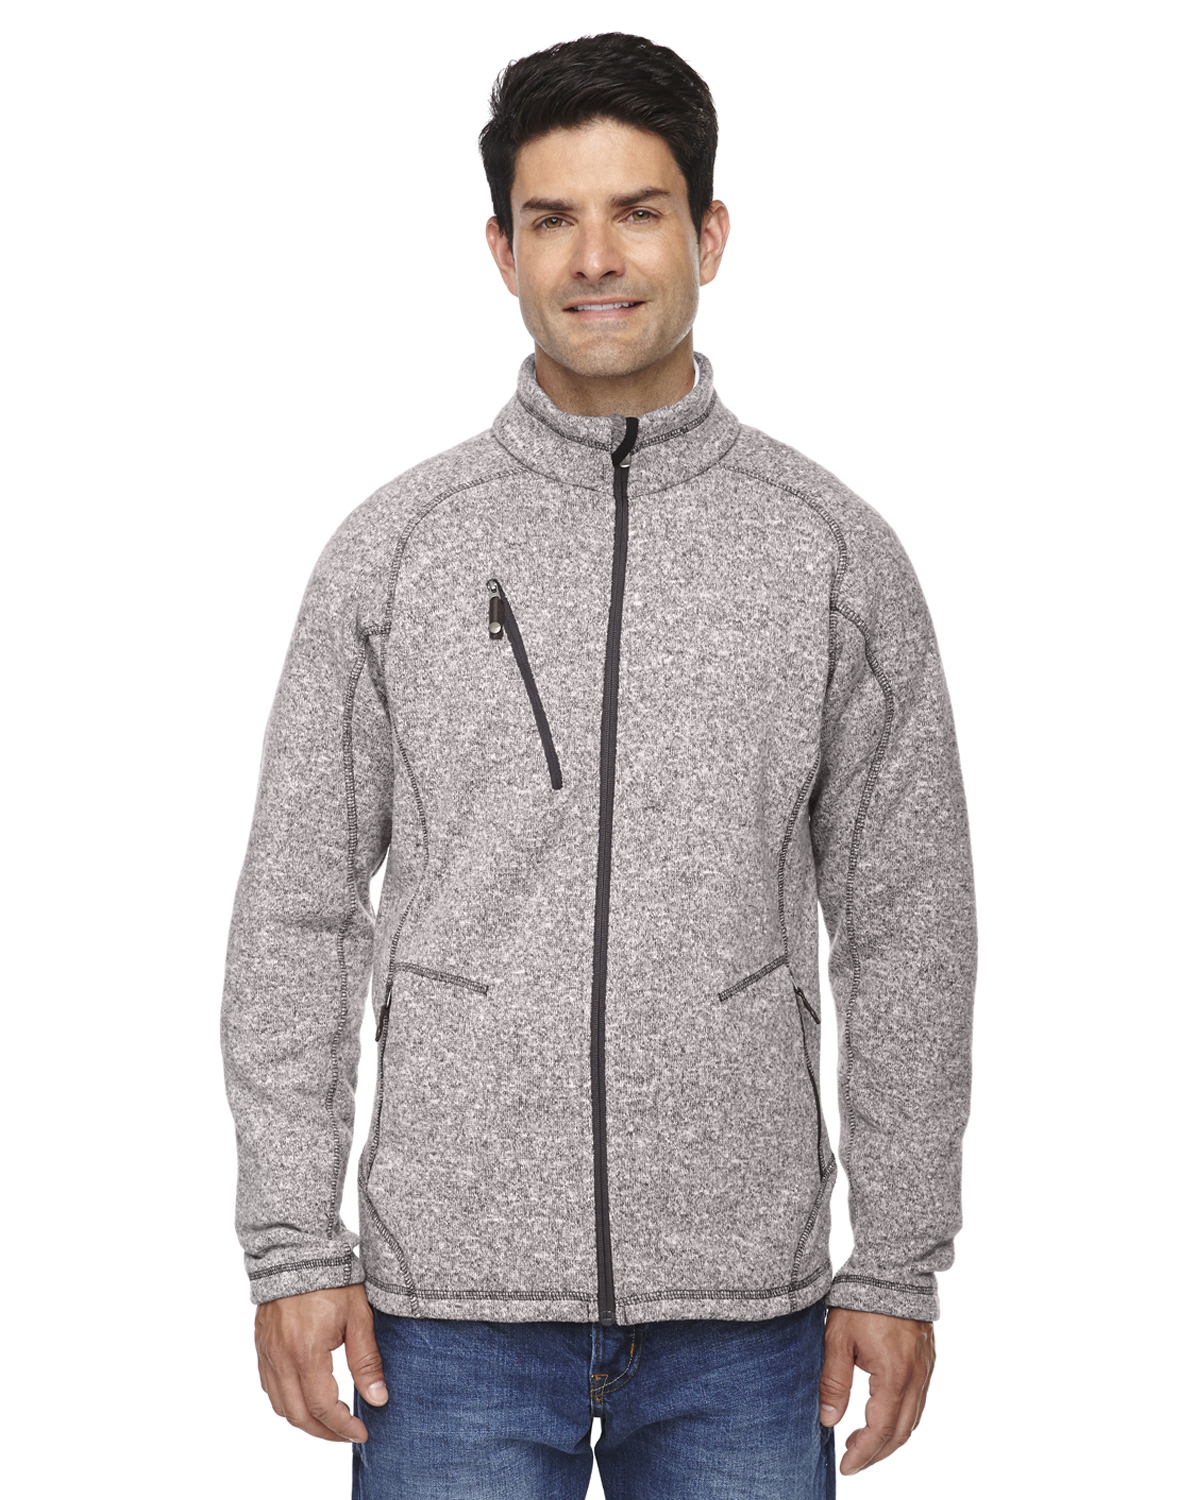 Ash City - 88669, North End Men's Peak Sweater Fleece Jacket - Logo Masters International